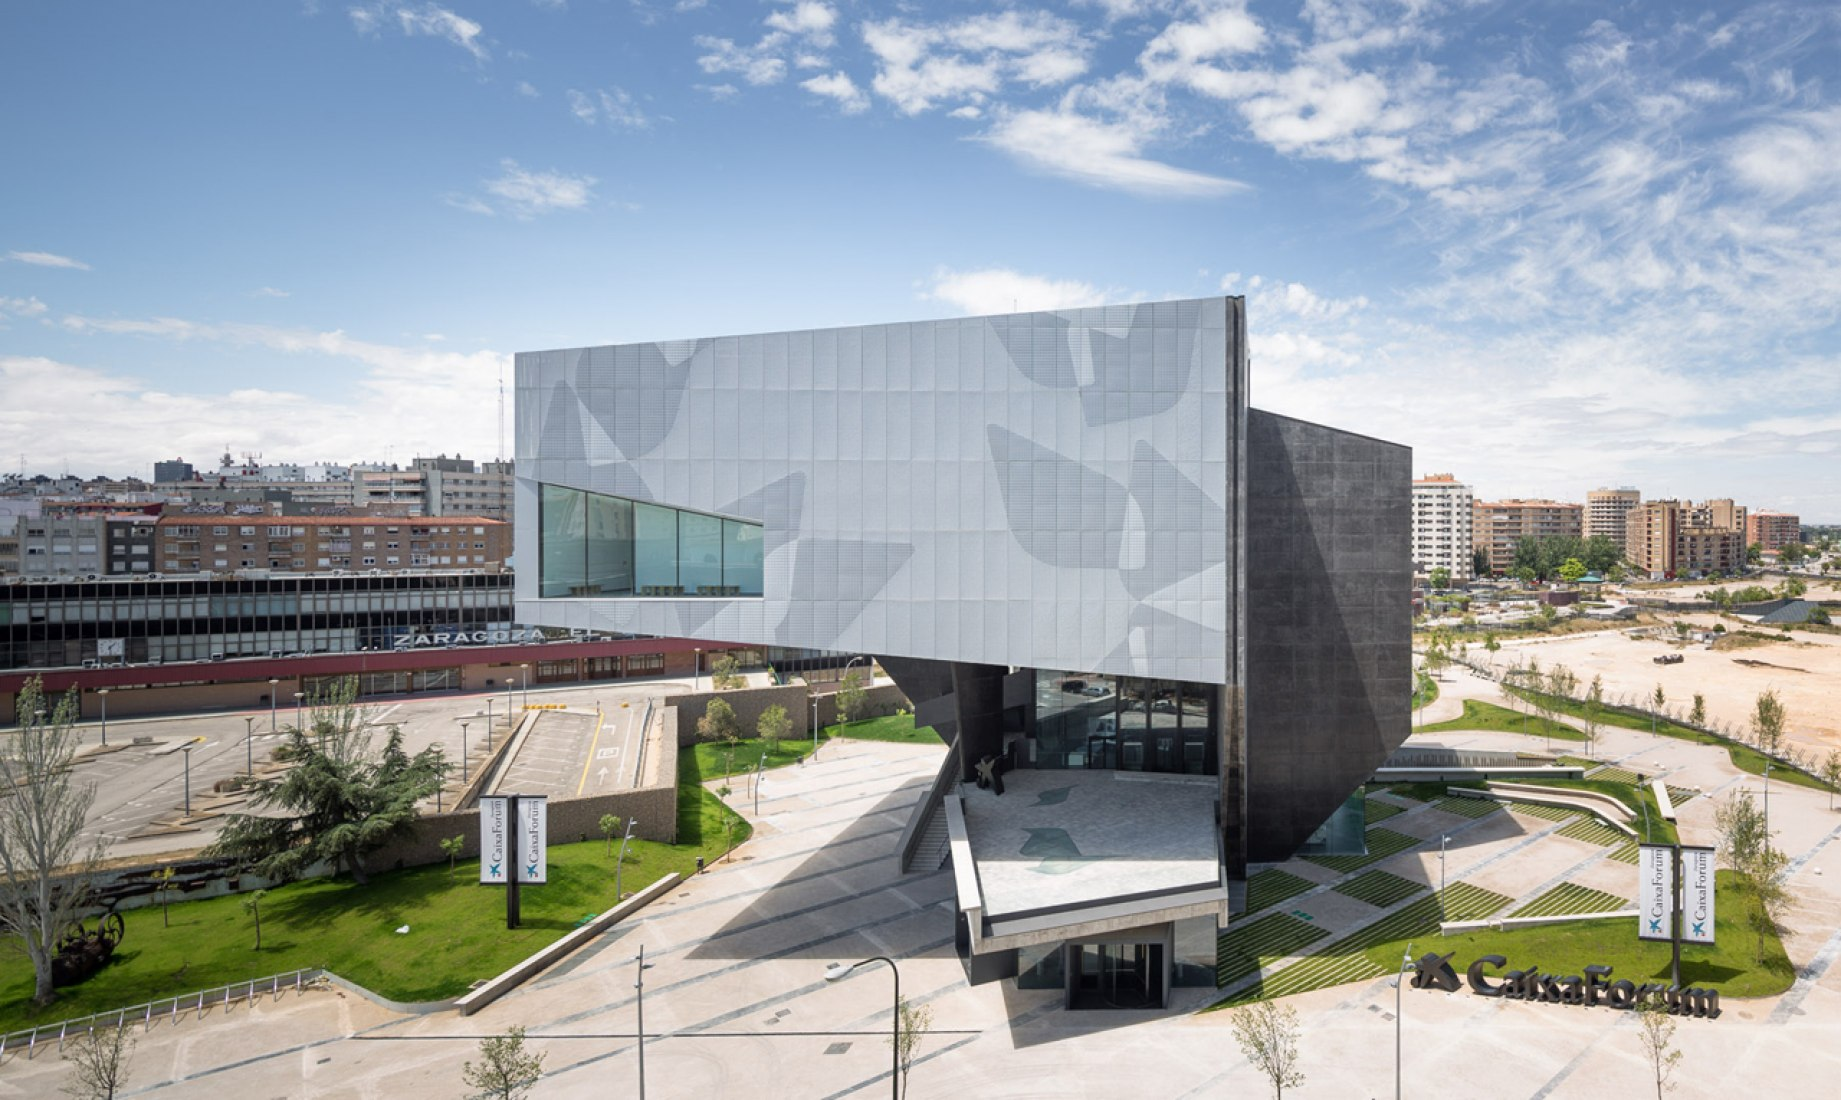 Overview. Caixaforum Museum, Auditorium and Cultural Centre in Zaragoza by Carme Pinós. Photography © Rubén P. Bescós.